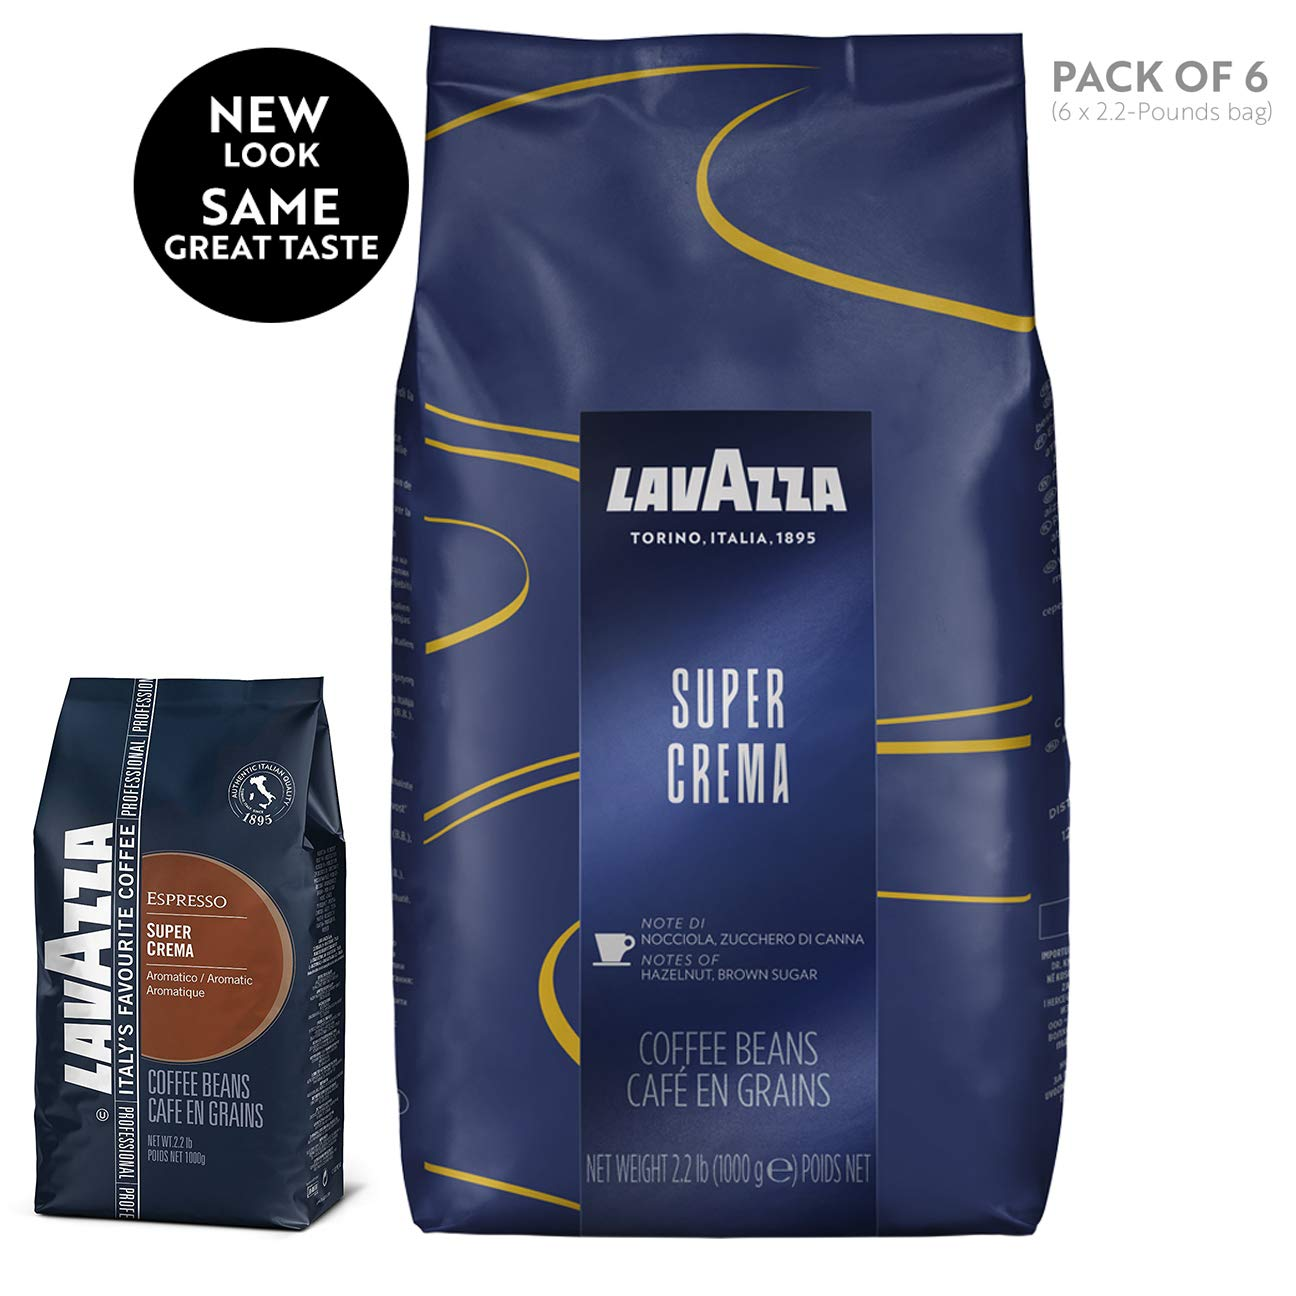 Lavazza Super Crema Whole Bean Coffee Blend, Medium Espresso Roast, 35.2 Ounce, Pack of 6 by Lavazza